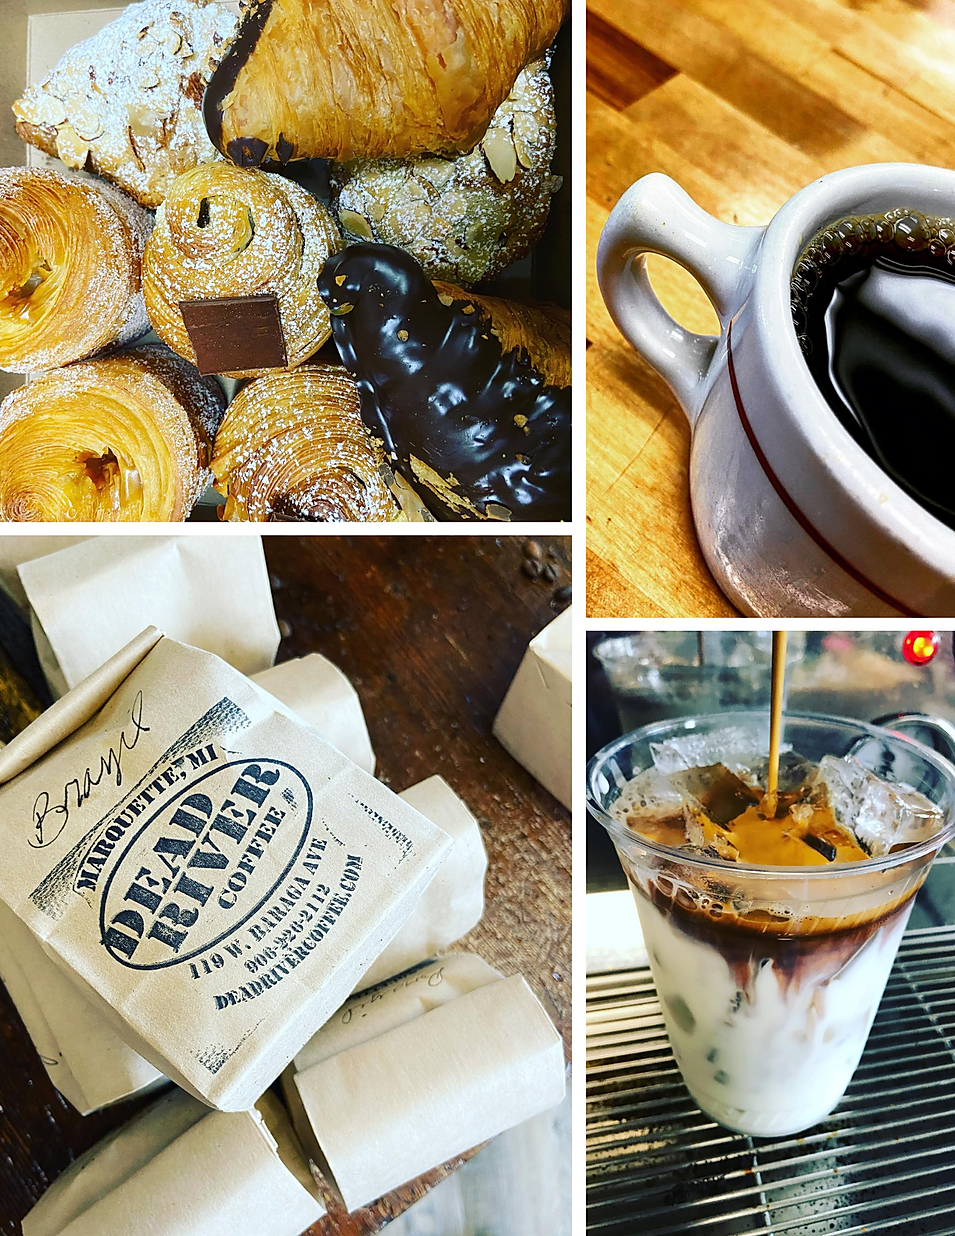 Dead River Coffee coffee roaster beans espresso latte hours pie pastry location deals Marquette Now